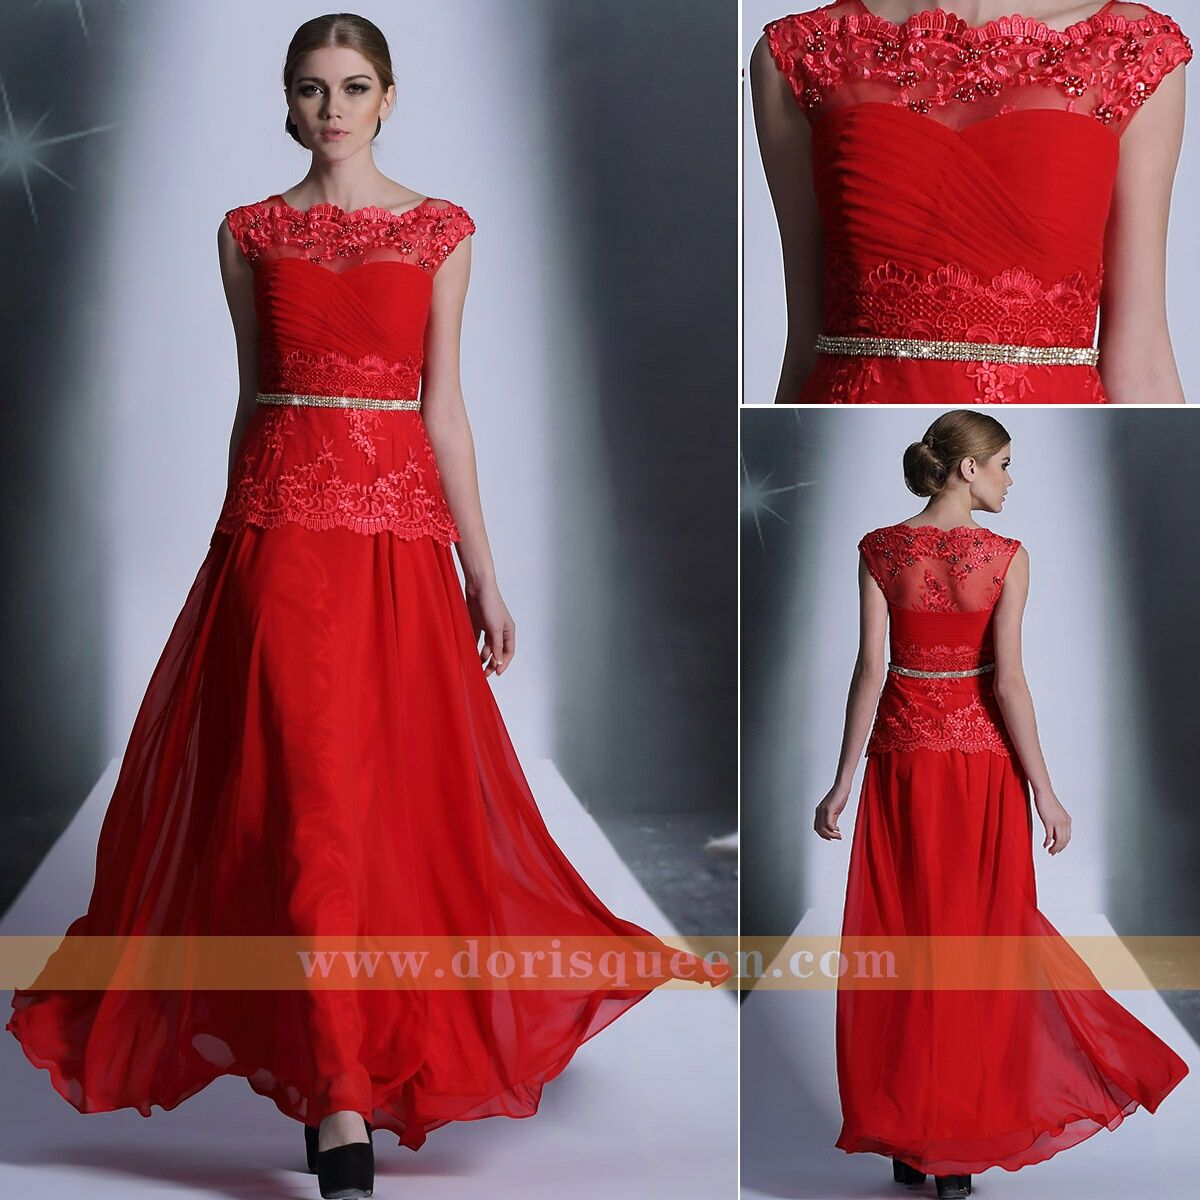 Formal Dresses - Page 217 of 522 - Prom Dress Shops